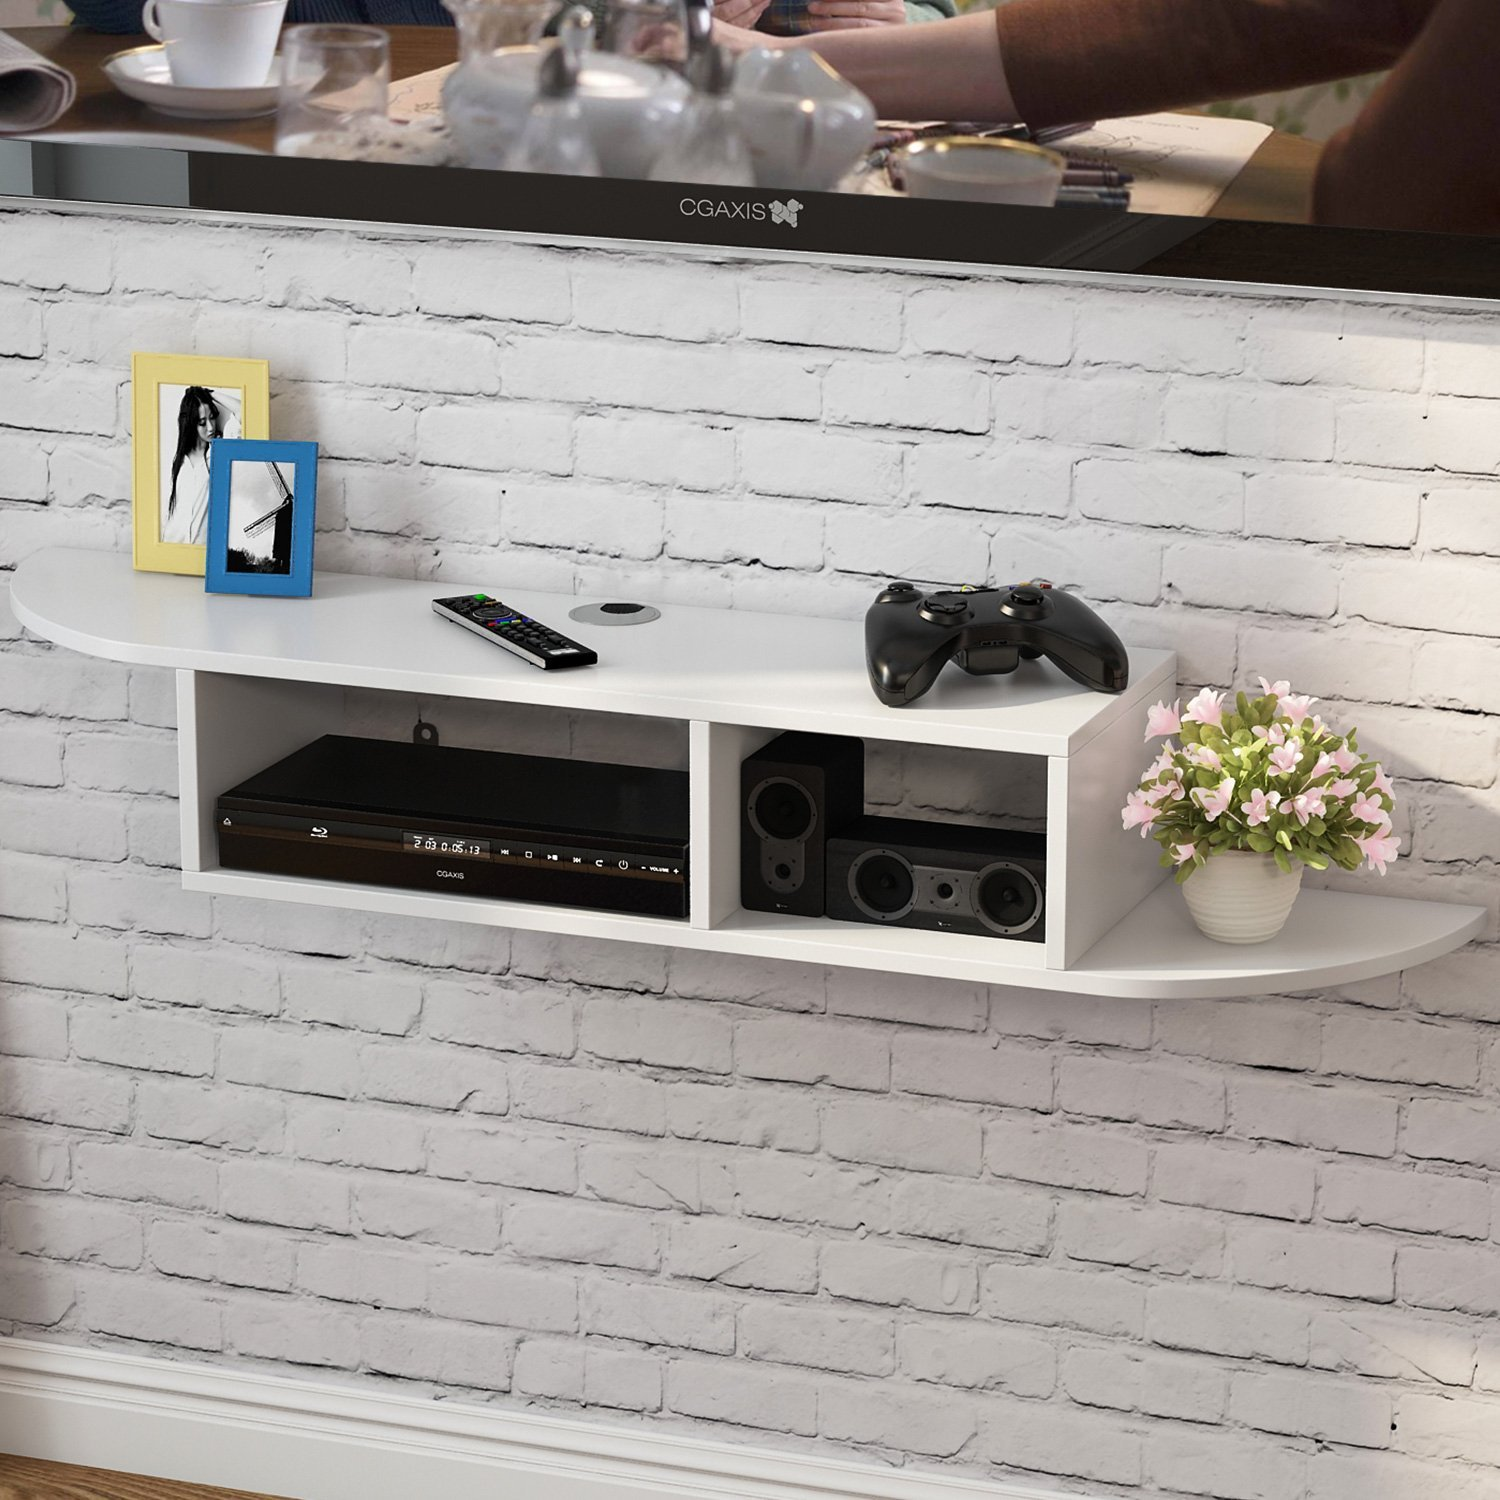 consoles modern find line floating shelves for game get quotations little tree wall mount shelf tier storage rack dvd industrial pipe shelving kit best subfloor vinyl flooring